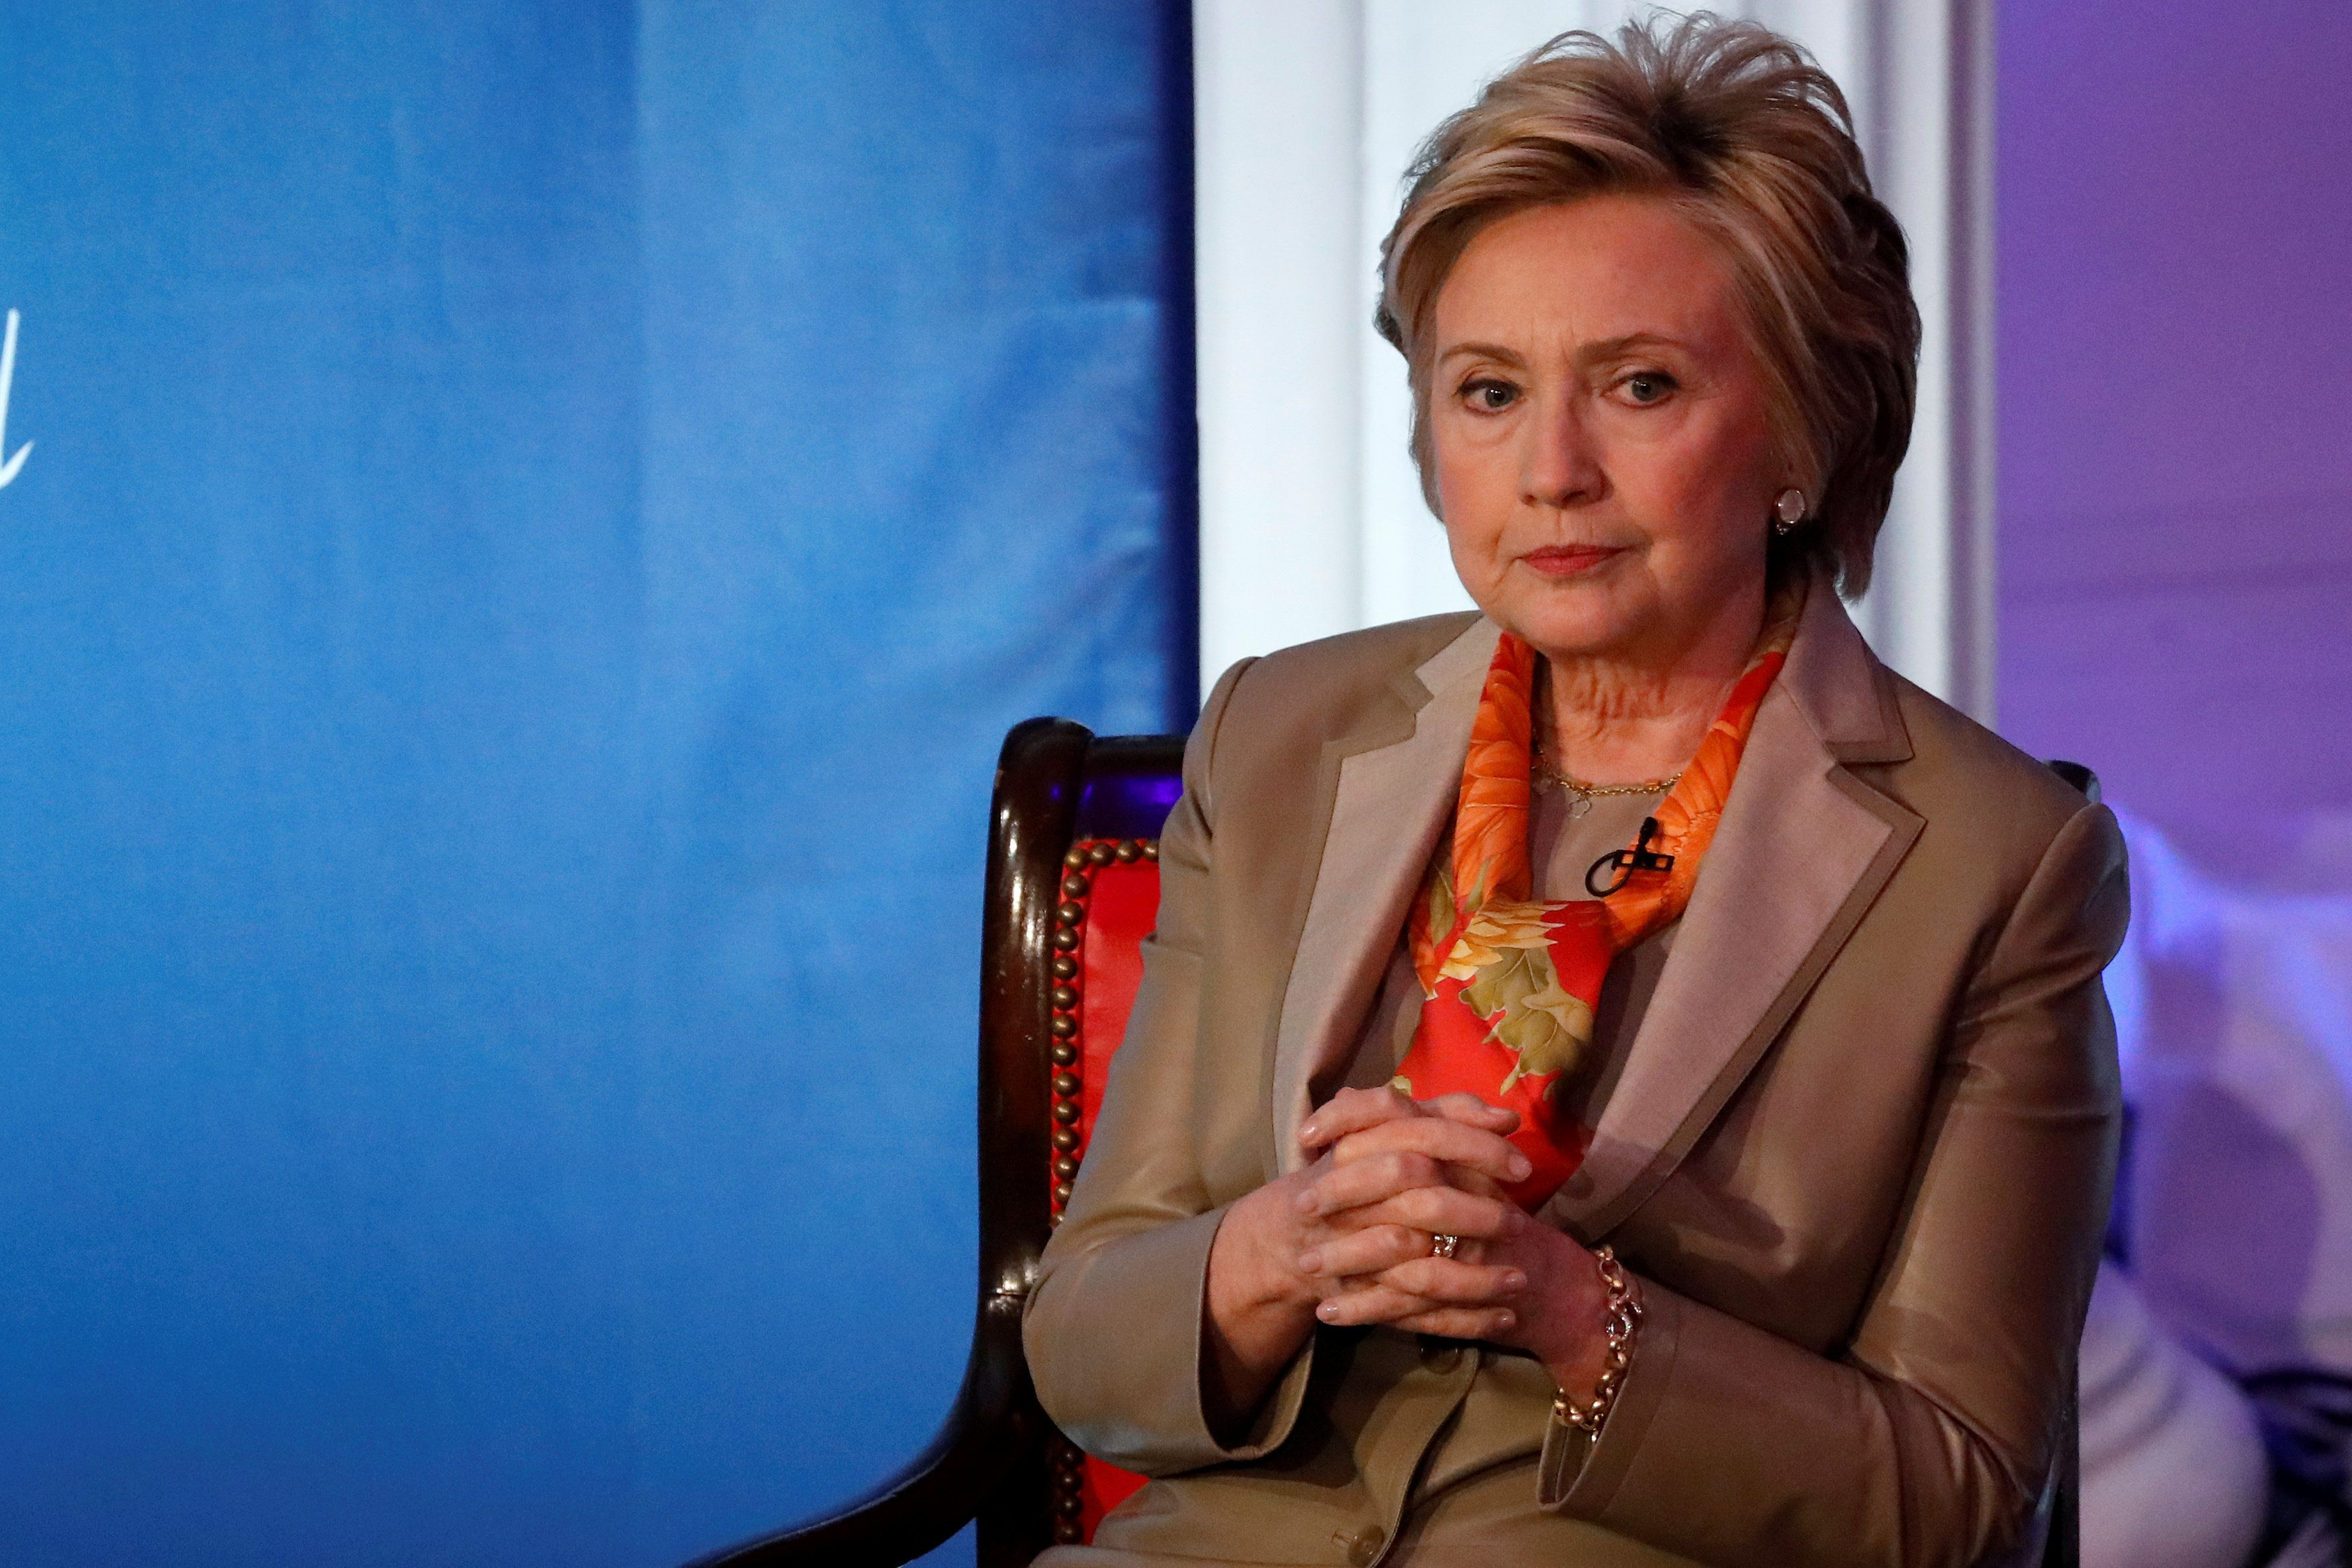 Former U.S. Secretary of State Hillary Clinton takes part in the Women for Women International Luncheon in New York City, New York, U.S., May 2, 2017. REUTERS/Brendan McDermid